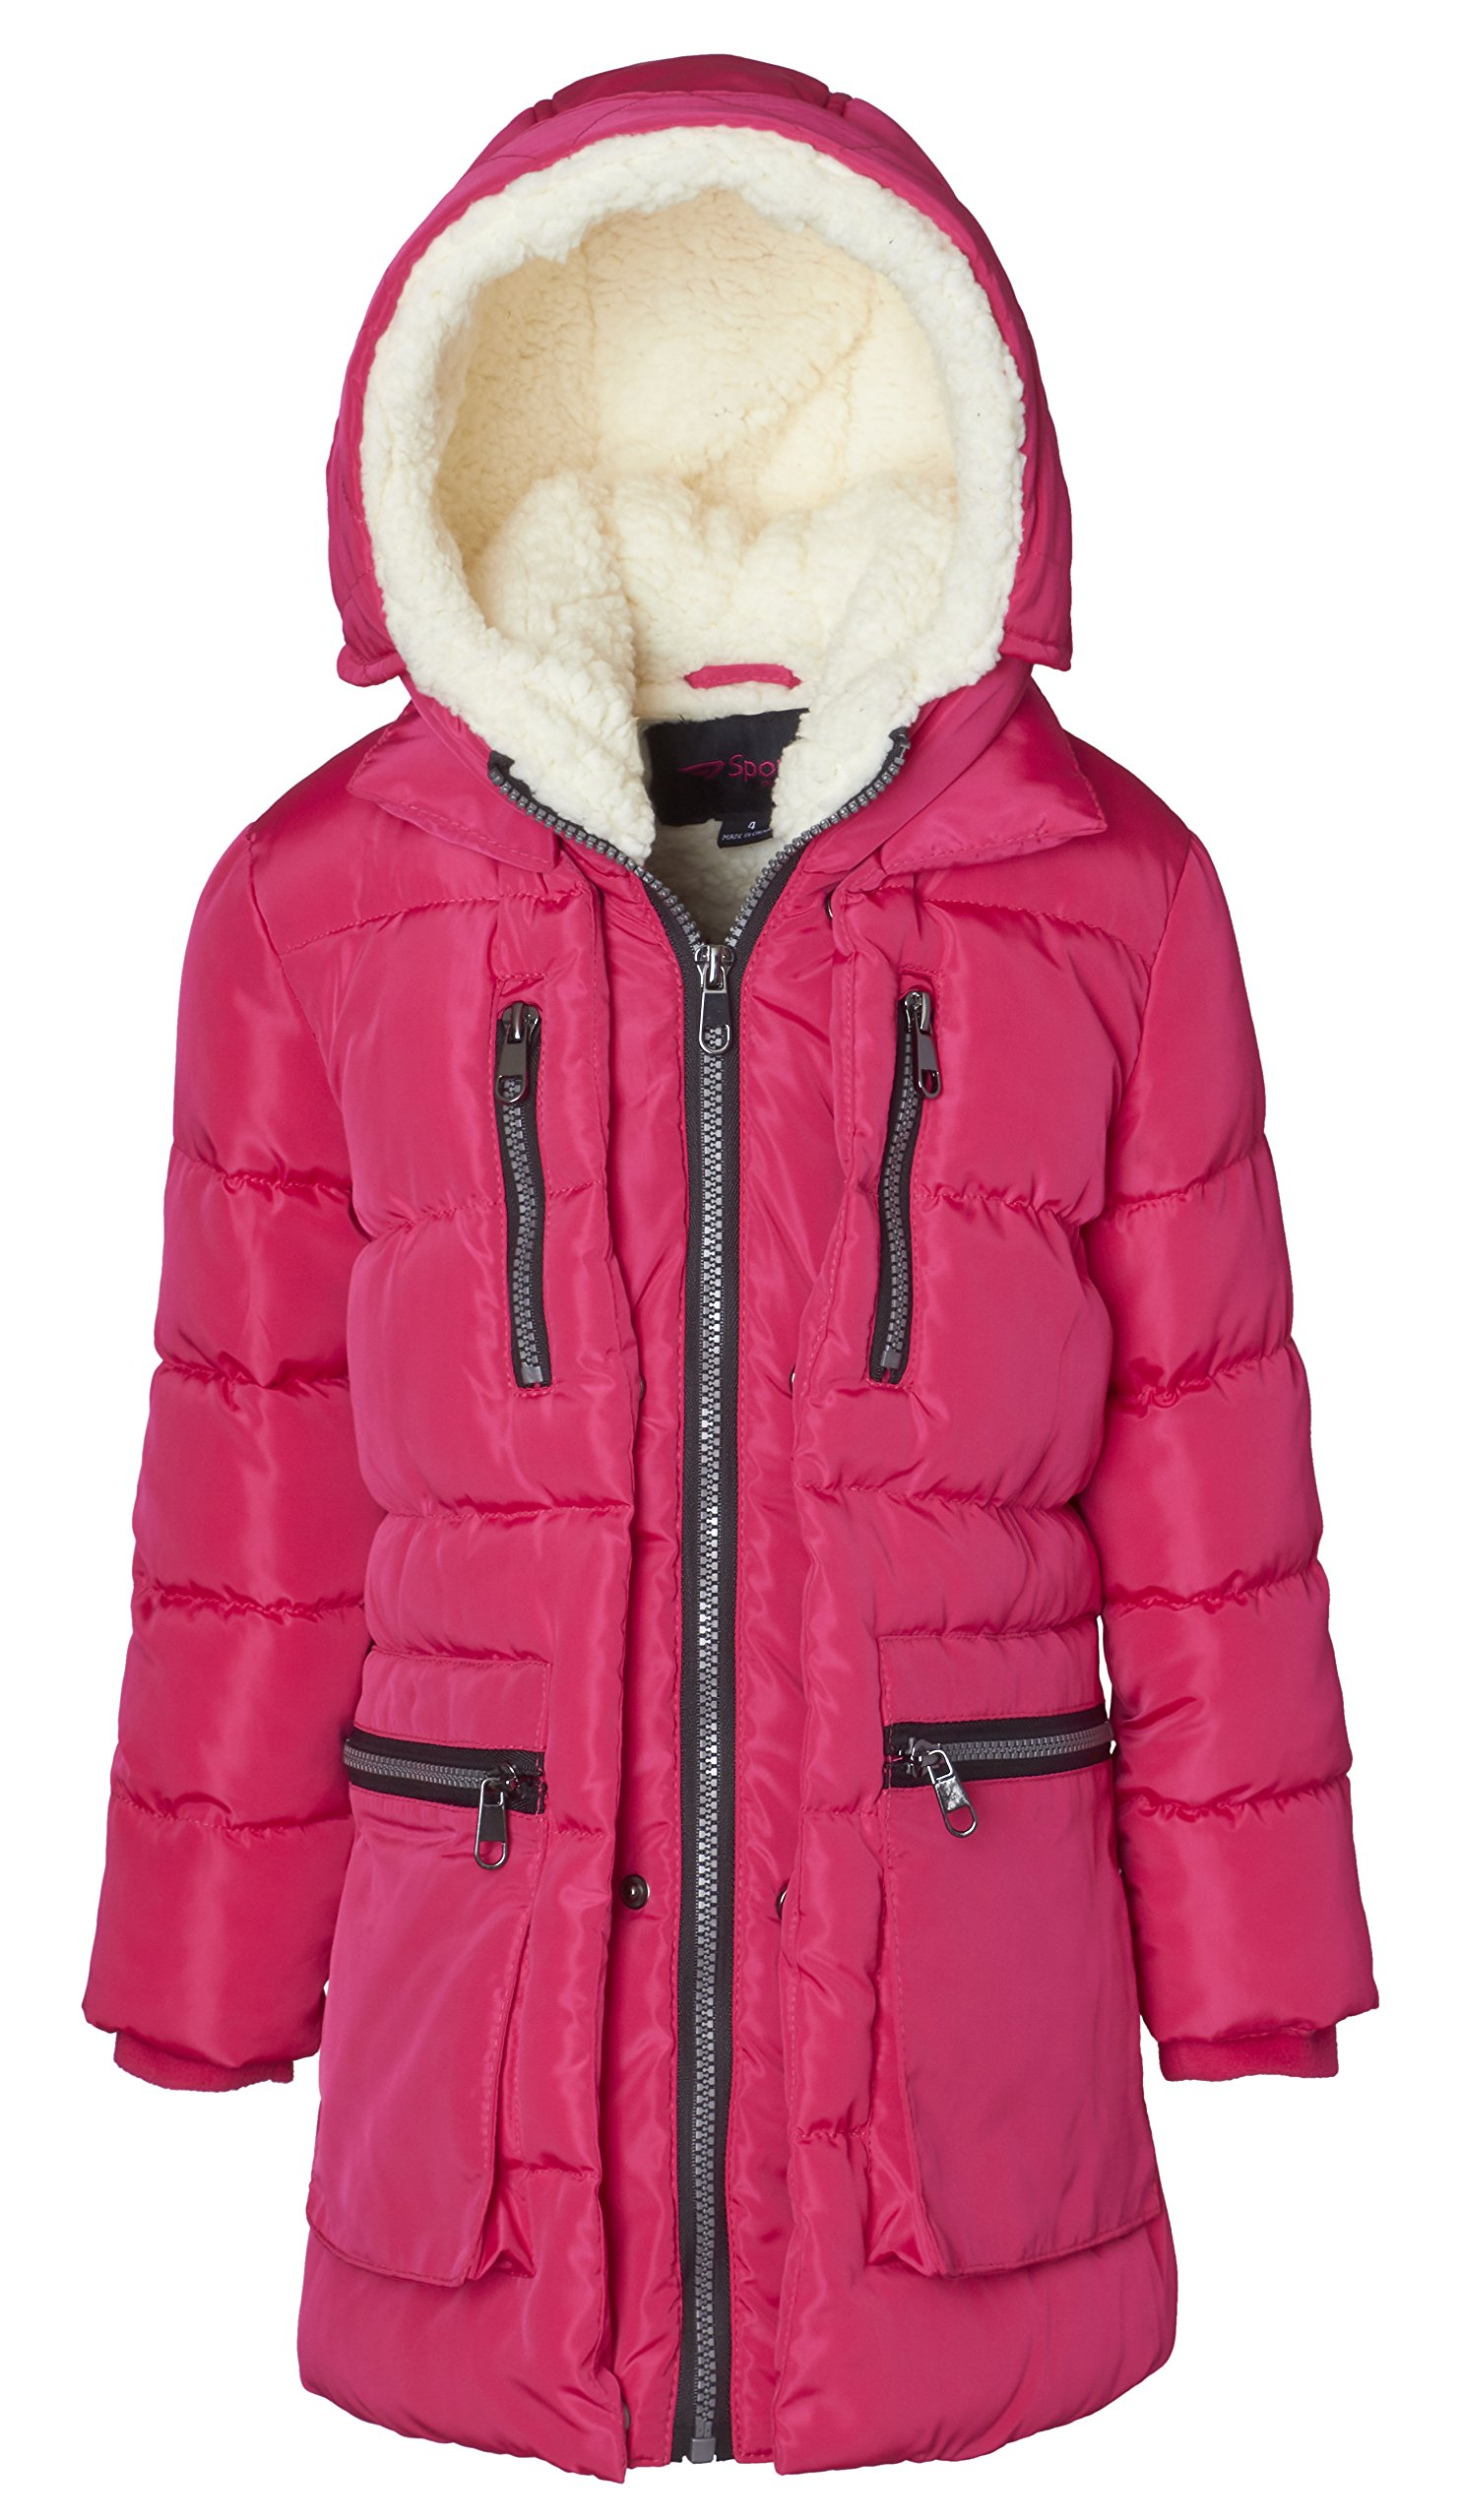 Sportoli Girls' Fleece Lined Heavy Quilted Fashion Detailed Jacket Coat with Attached Sherpa Lined Hood - Rose 5/6